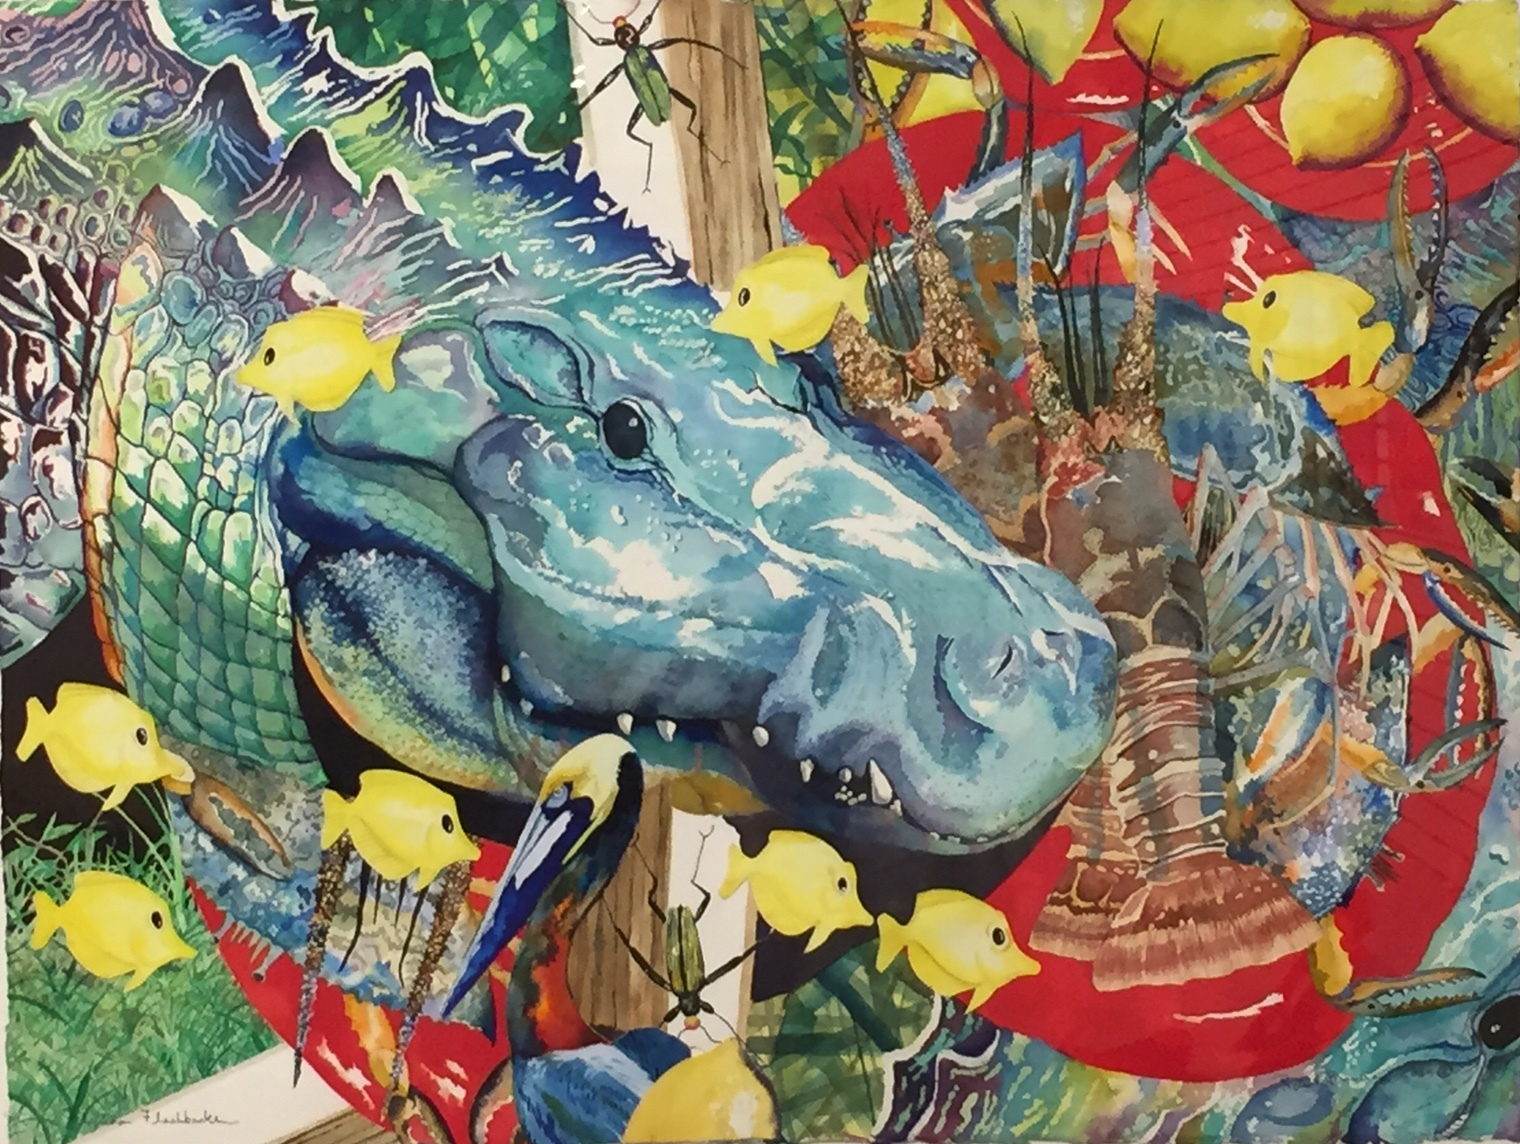 colorful painting of an alligator surrounded byb yellow fish, a lobster, lemons and a pelican